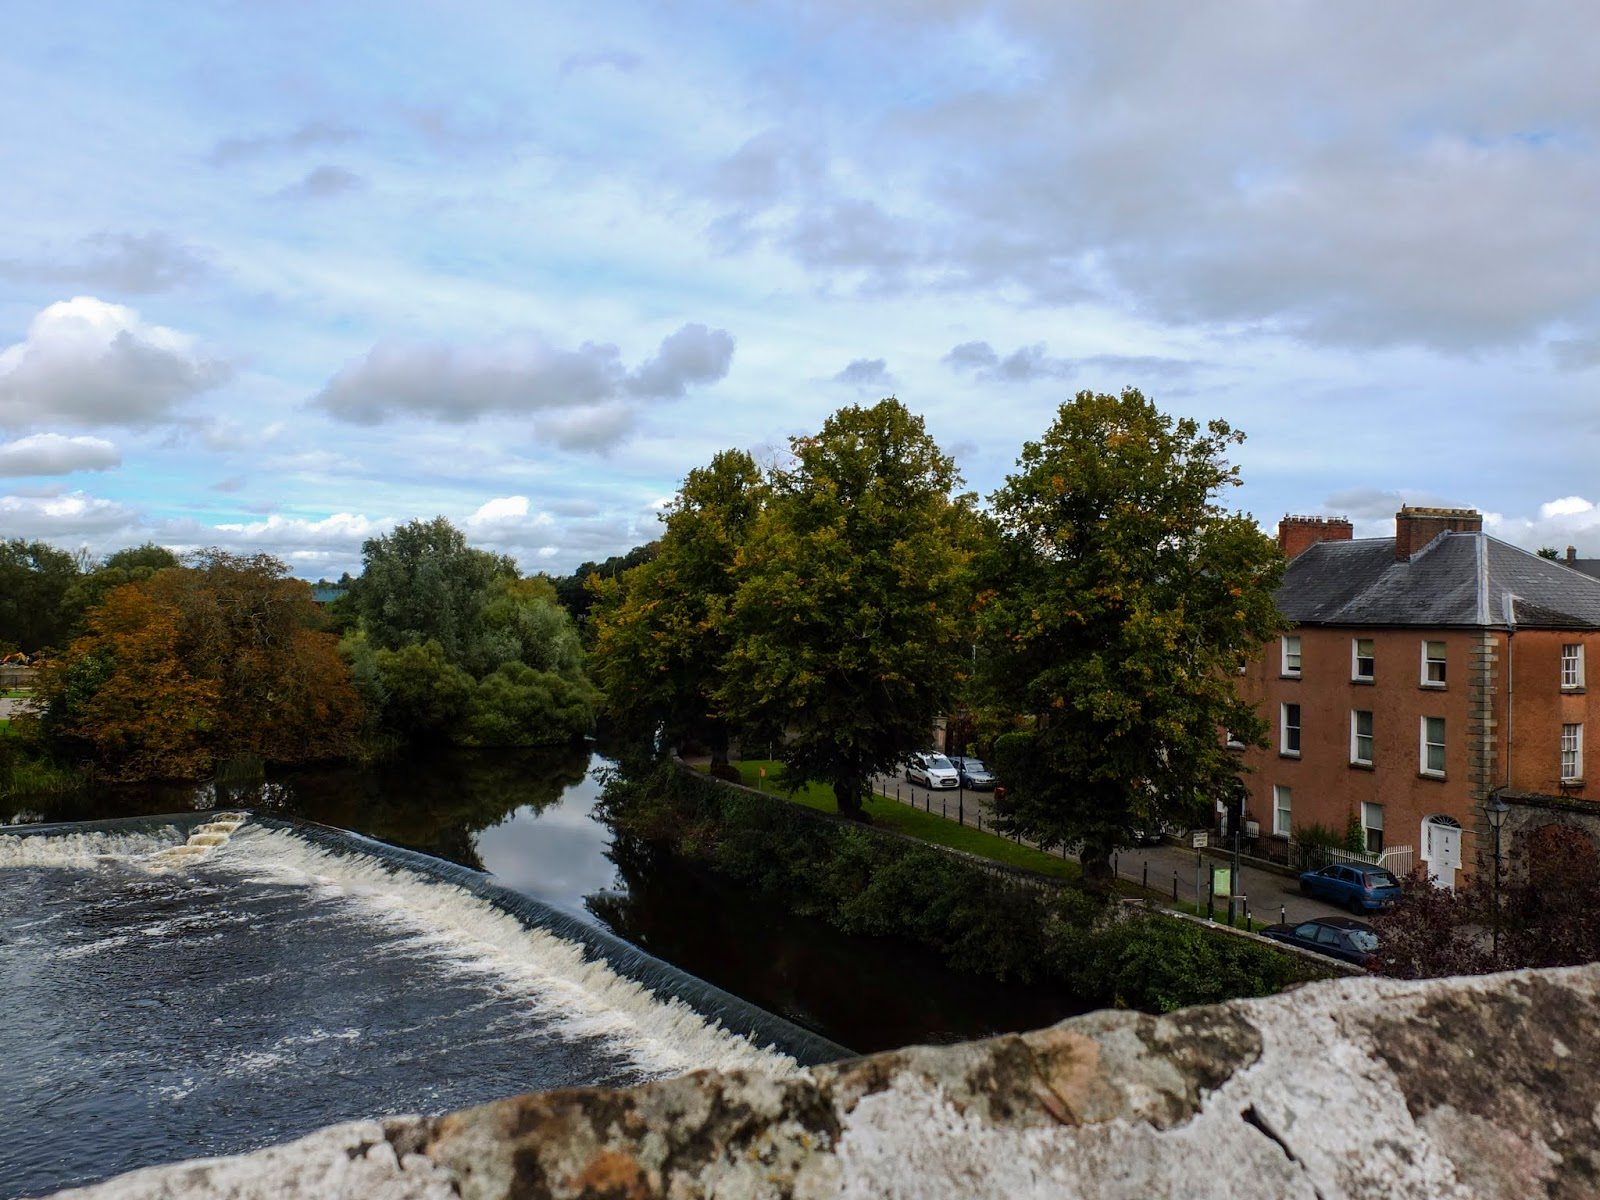 View of a weir from the Cahir Castle in Co.Tipperary.